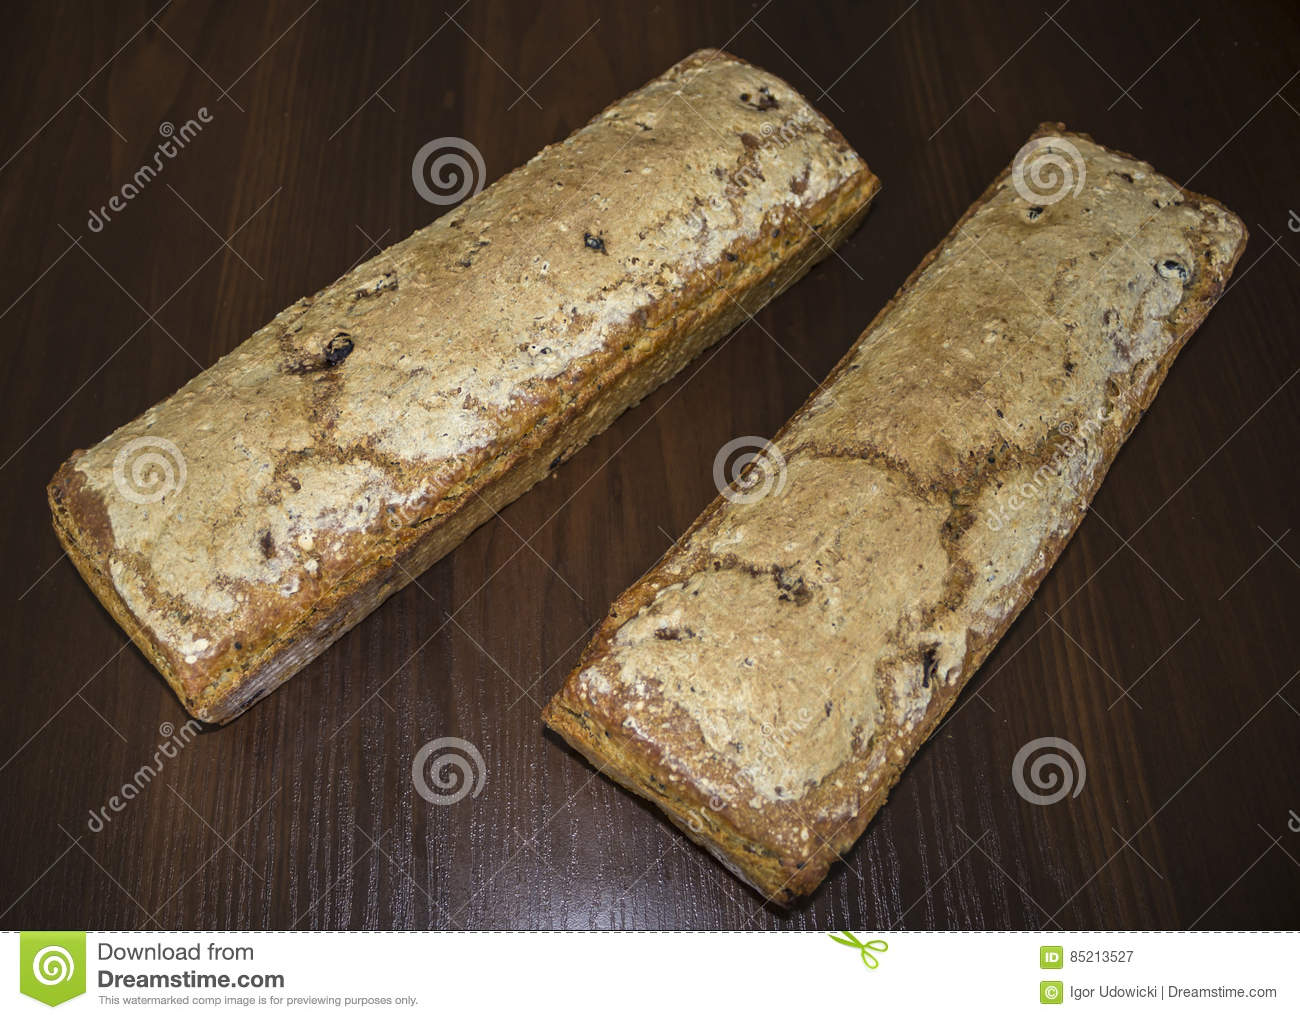 Two loaves of bread baked at home.